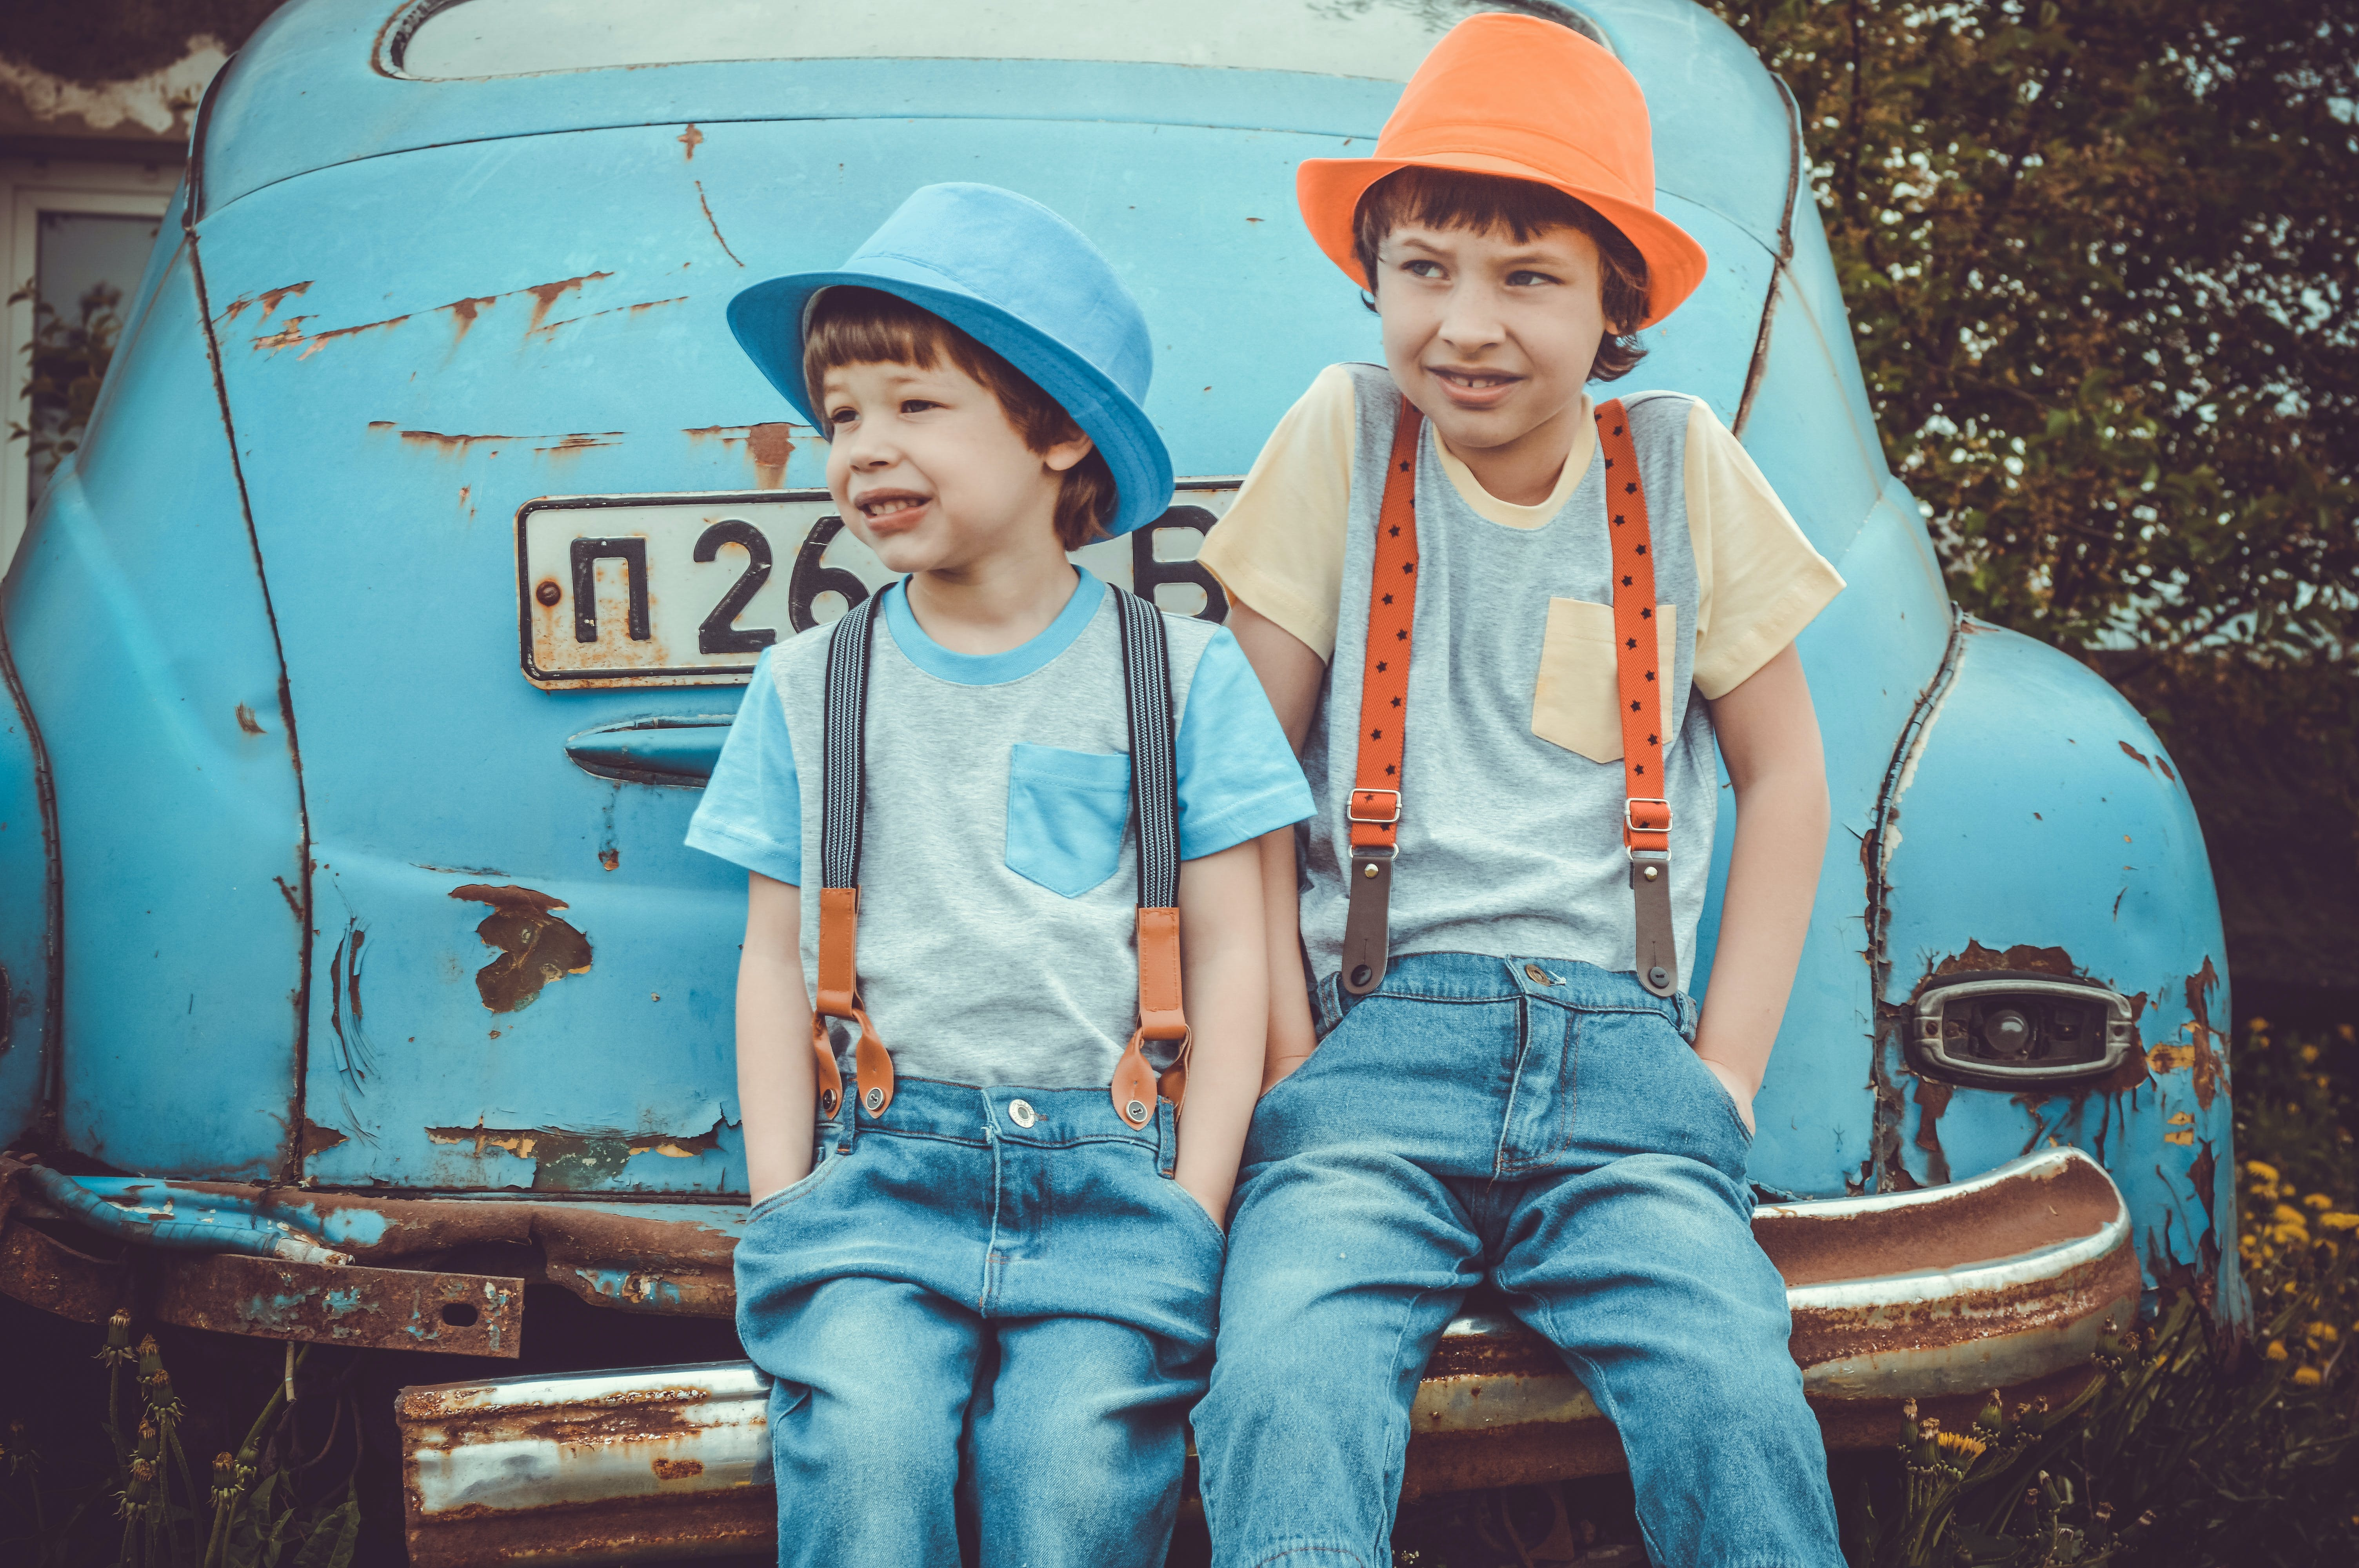 Two Boys Sitting on Classic Blue Car's Rear Bumper